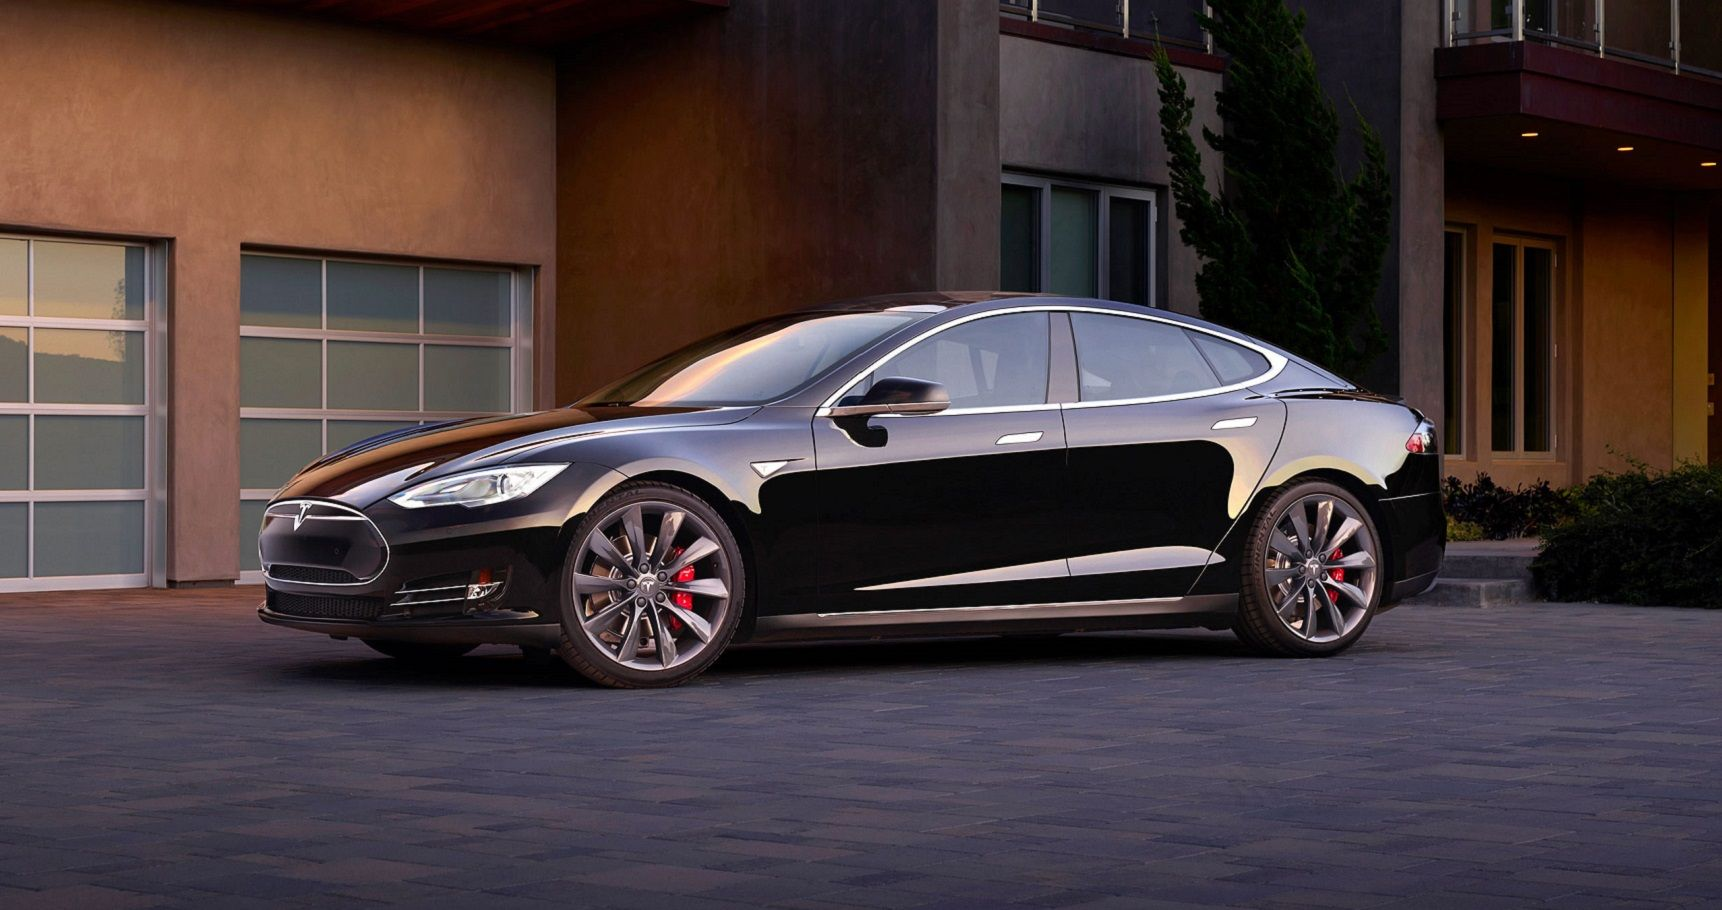 Top 10 Electric Cars You'll Actually Want